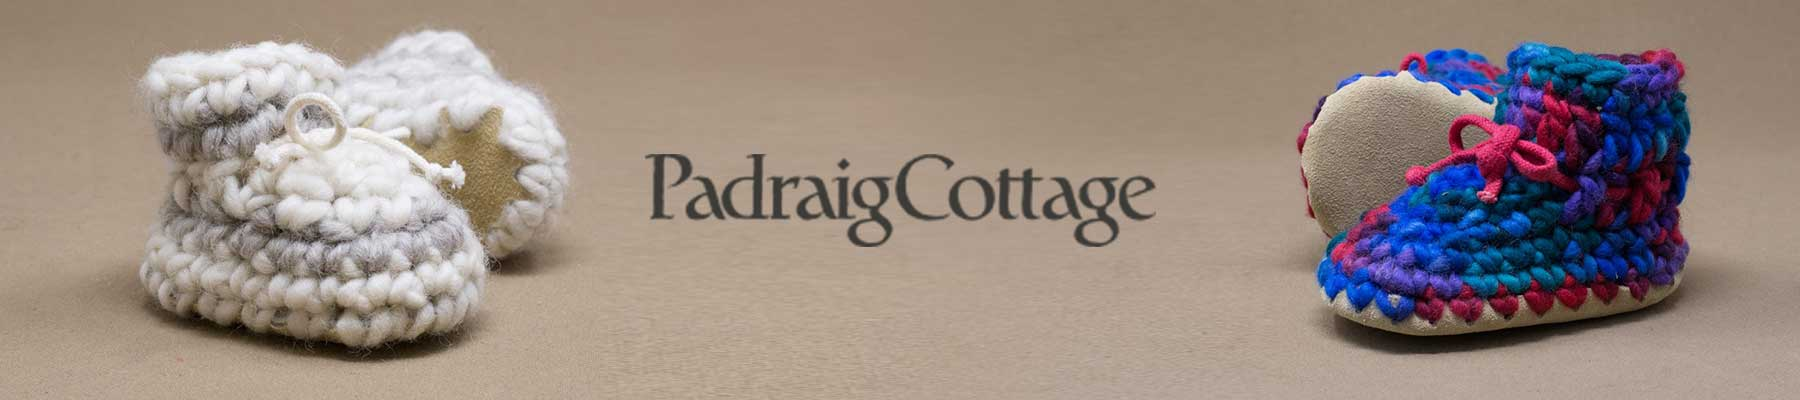 Padraig Cottage Newborn, Baby, Toddler, Kids and Adult Slippers